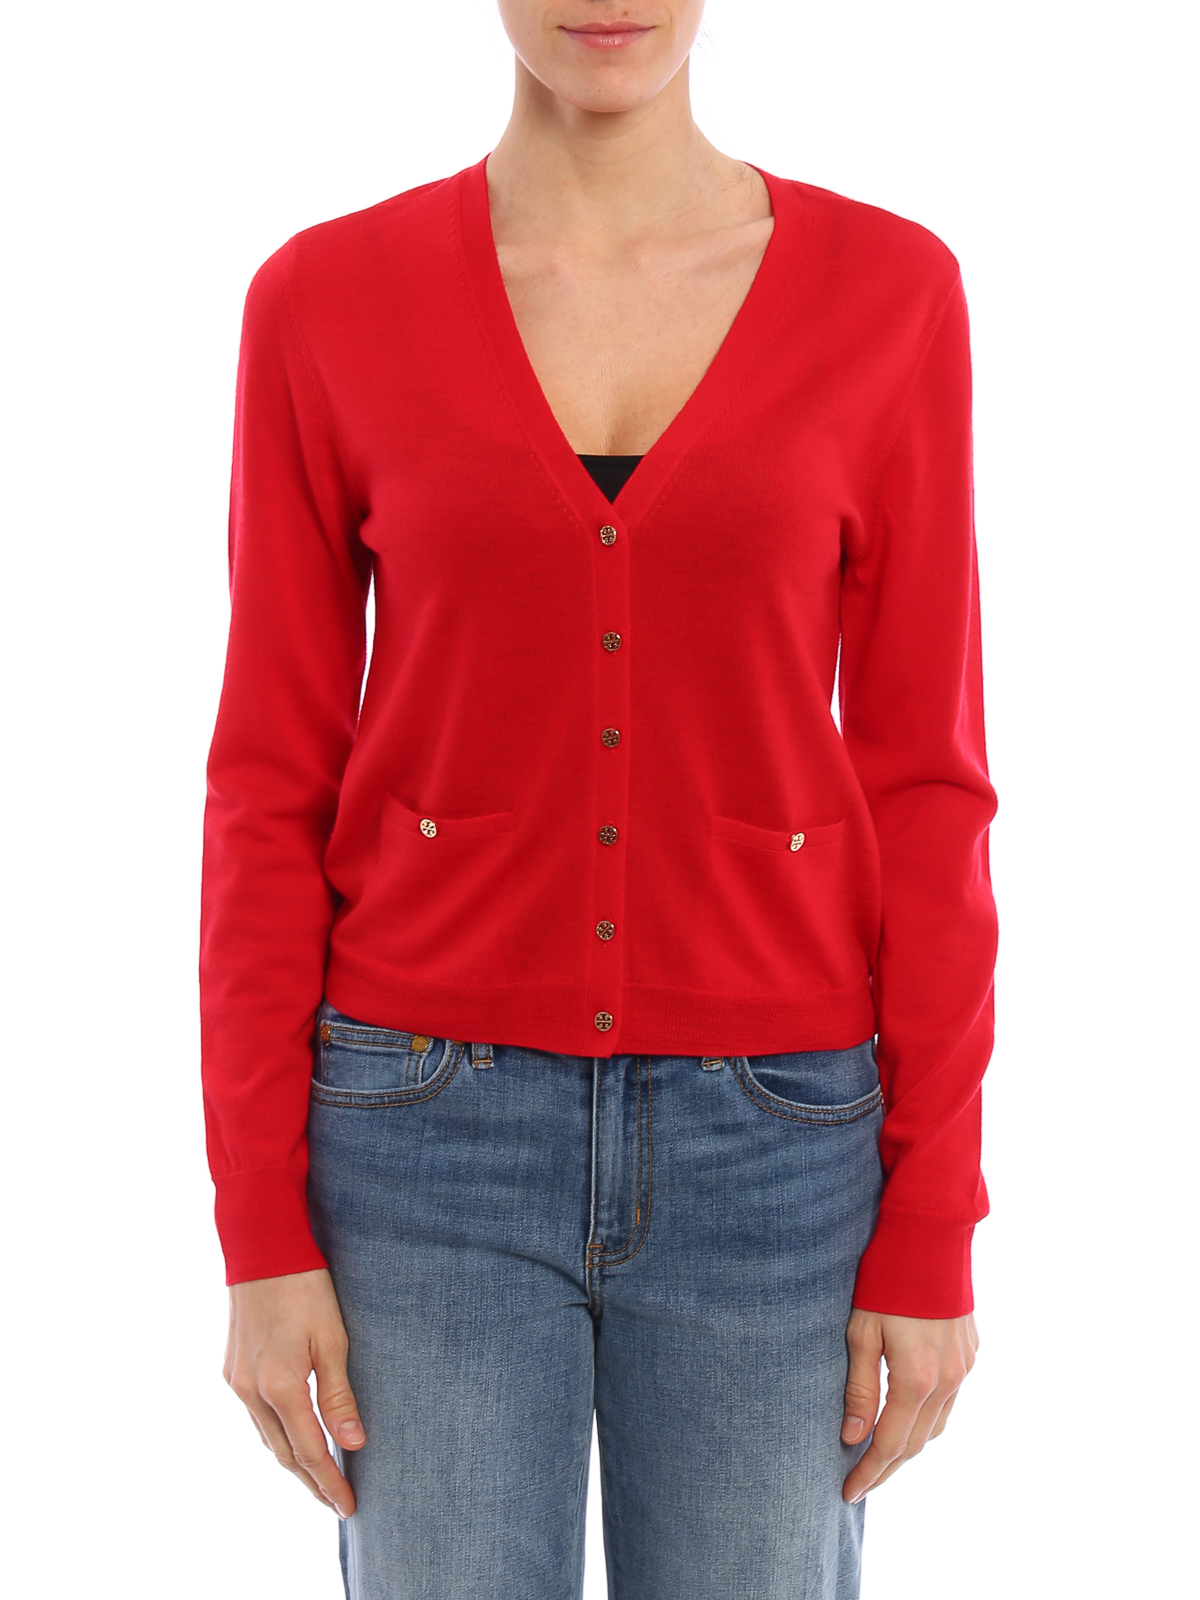 Shrunken merino wool cardigan by Tory Burch - cardigans | iKRIX